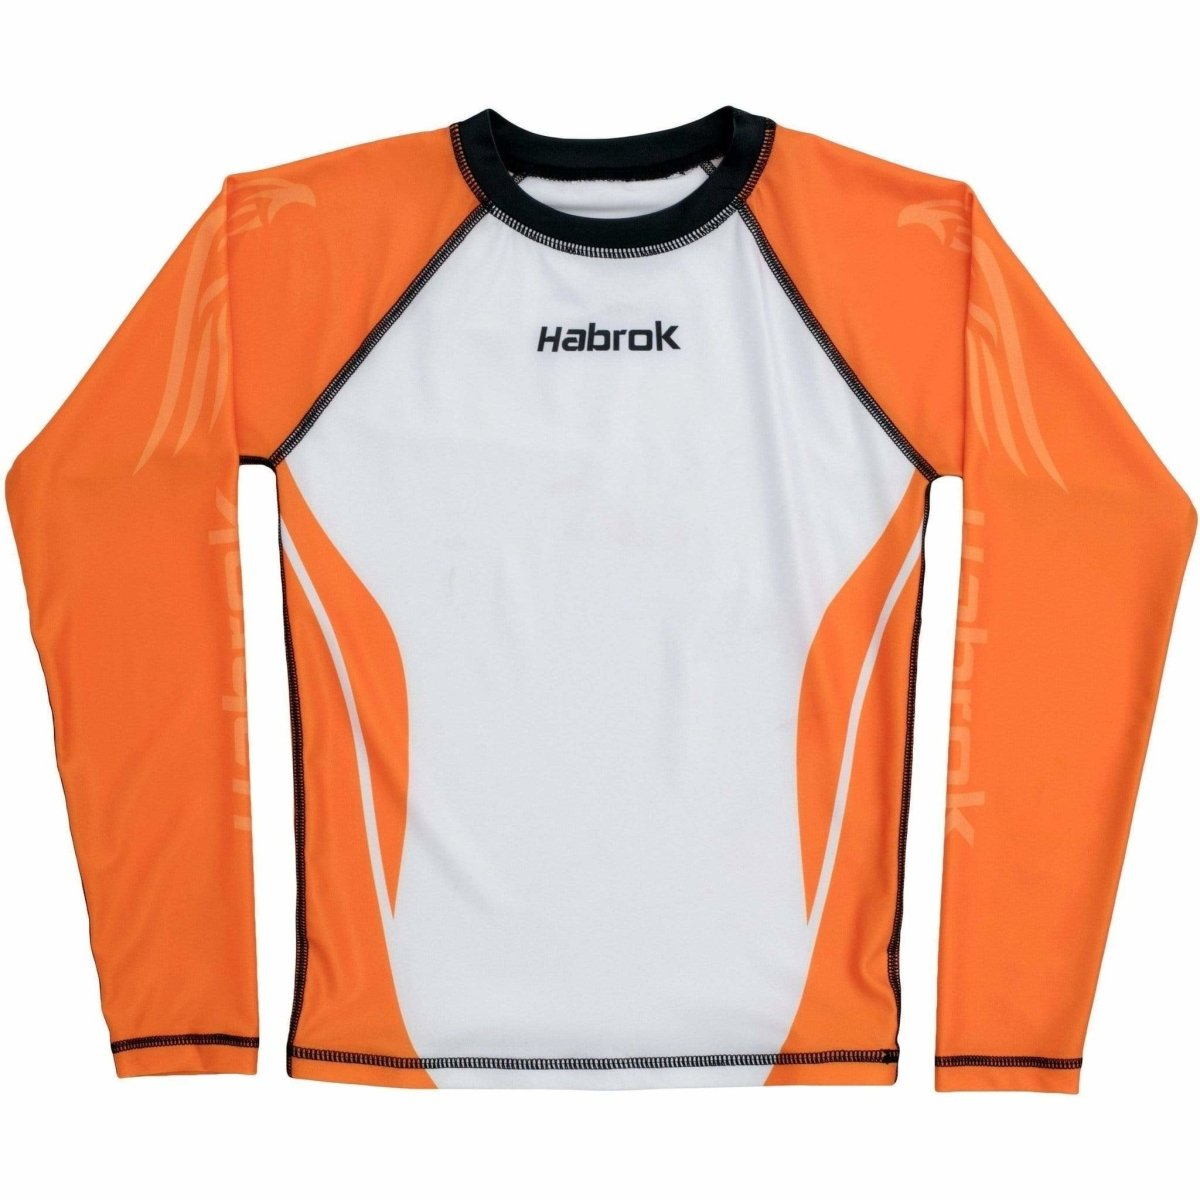 Habrok Rash Guard XS / Orange Performance Rash Guard - Youth Habrok - Performance Rash Guard - Youth